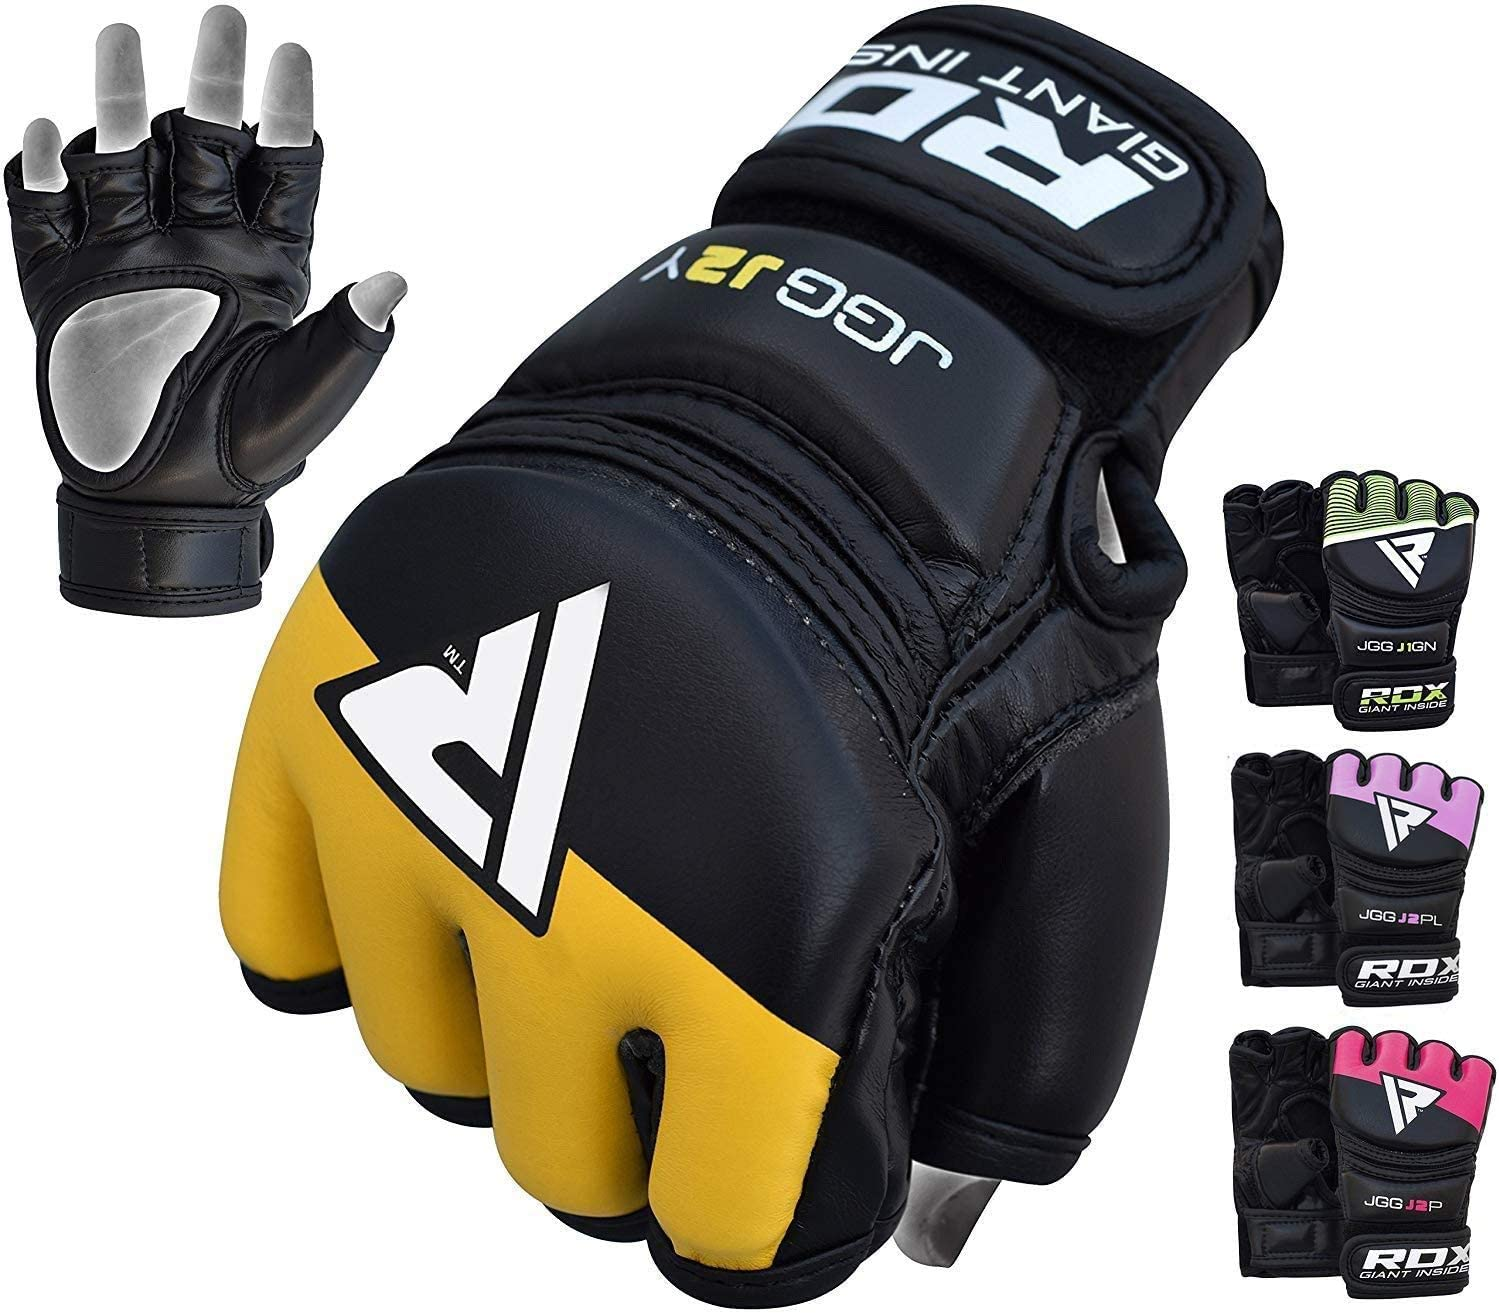 RDX Kids MMA Gloves for Grappling Martial Arts Training   Maya Hide Leather Mitts for Youth  Good for Kickboxing, Sparring, Muay Thai, Junior Cage Fighting & Punching Bag : Sports & Outdoors